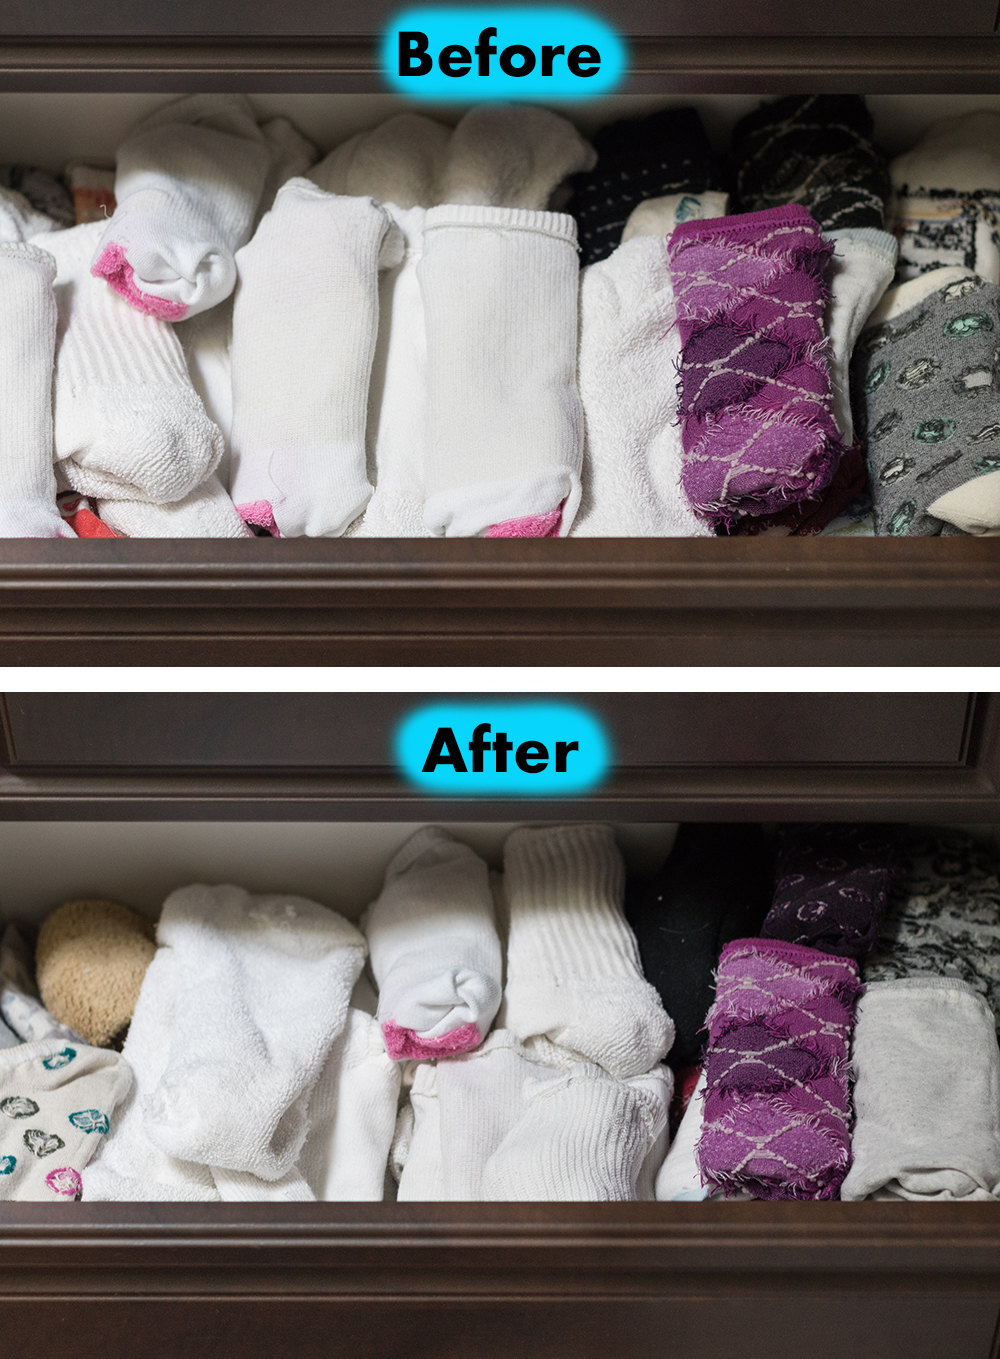 10 Quick Decluttering Projects to Organize Your Home - Sock Drawer Organization | https://www.roseclearfield.com